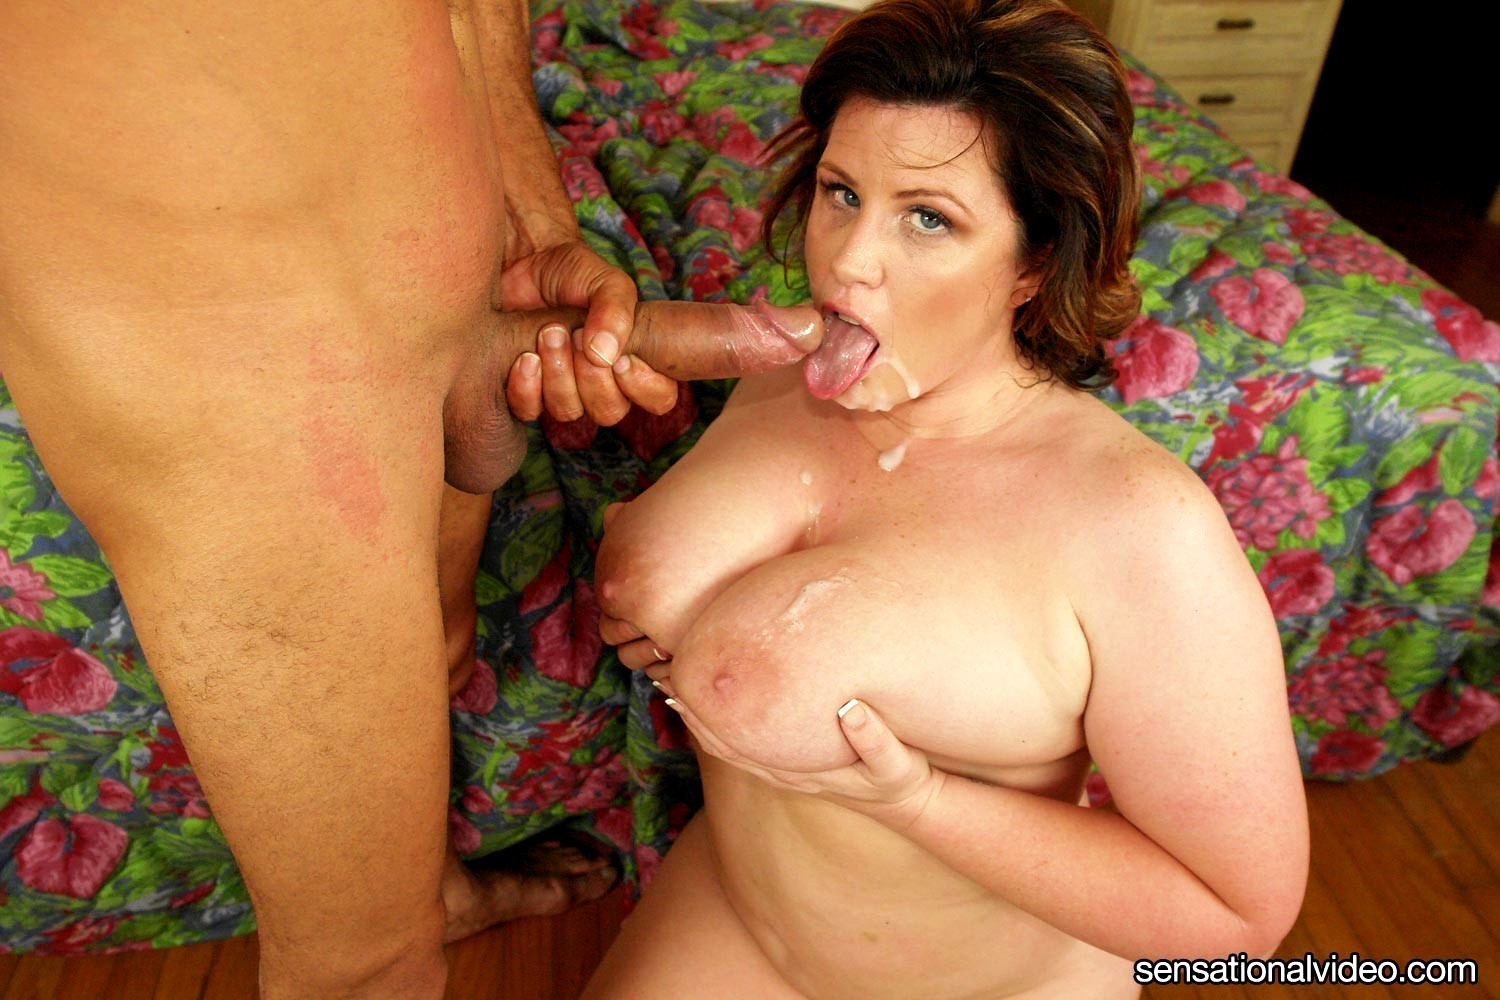 Babe Today Plumper Pass Lisa Sparks Lisa Sparxx Lisa Sparxxx Regular -6733